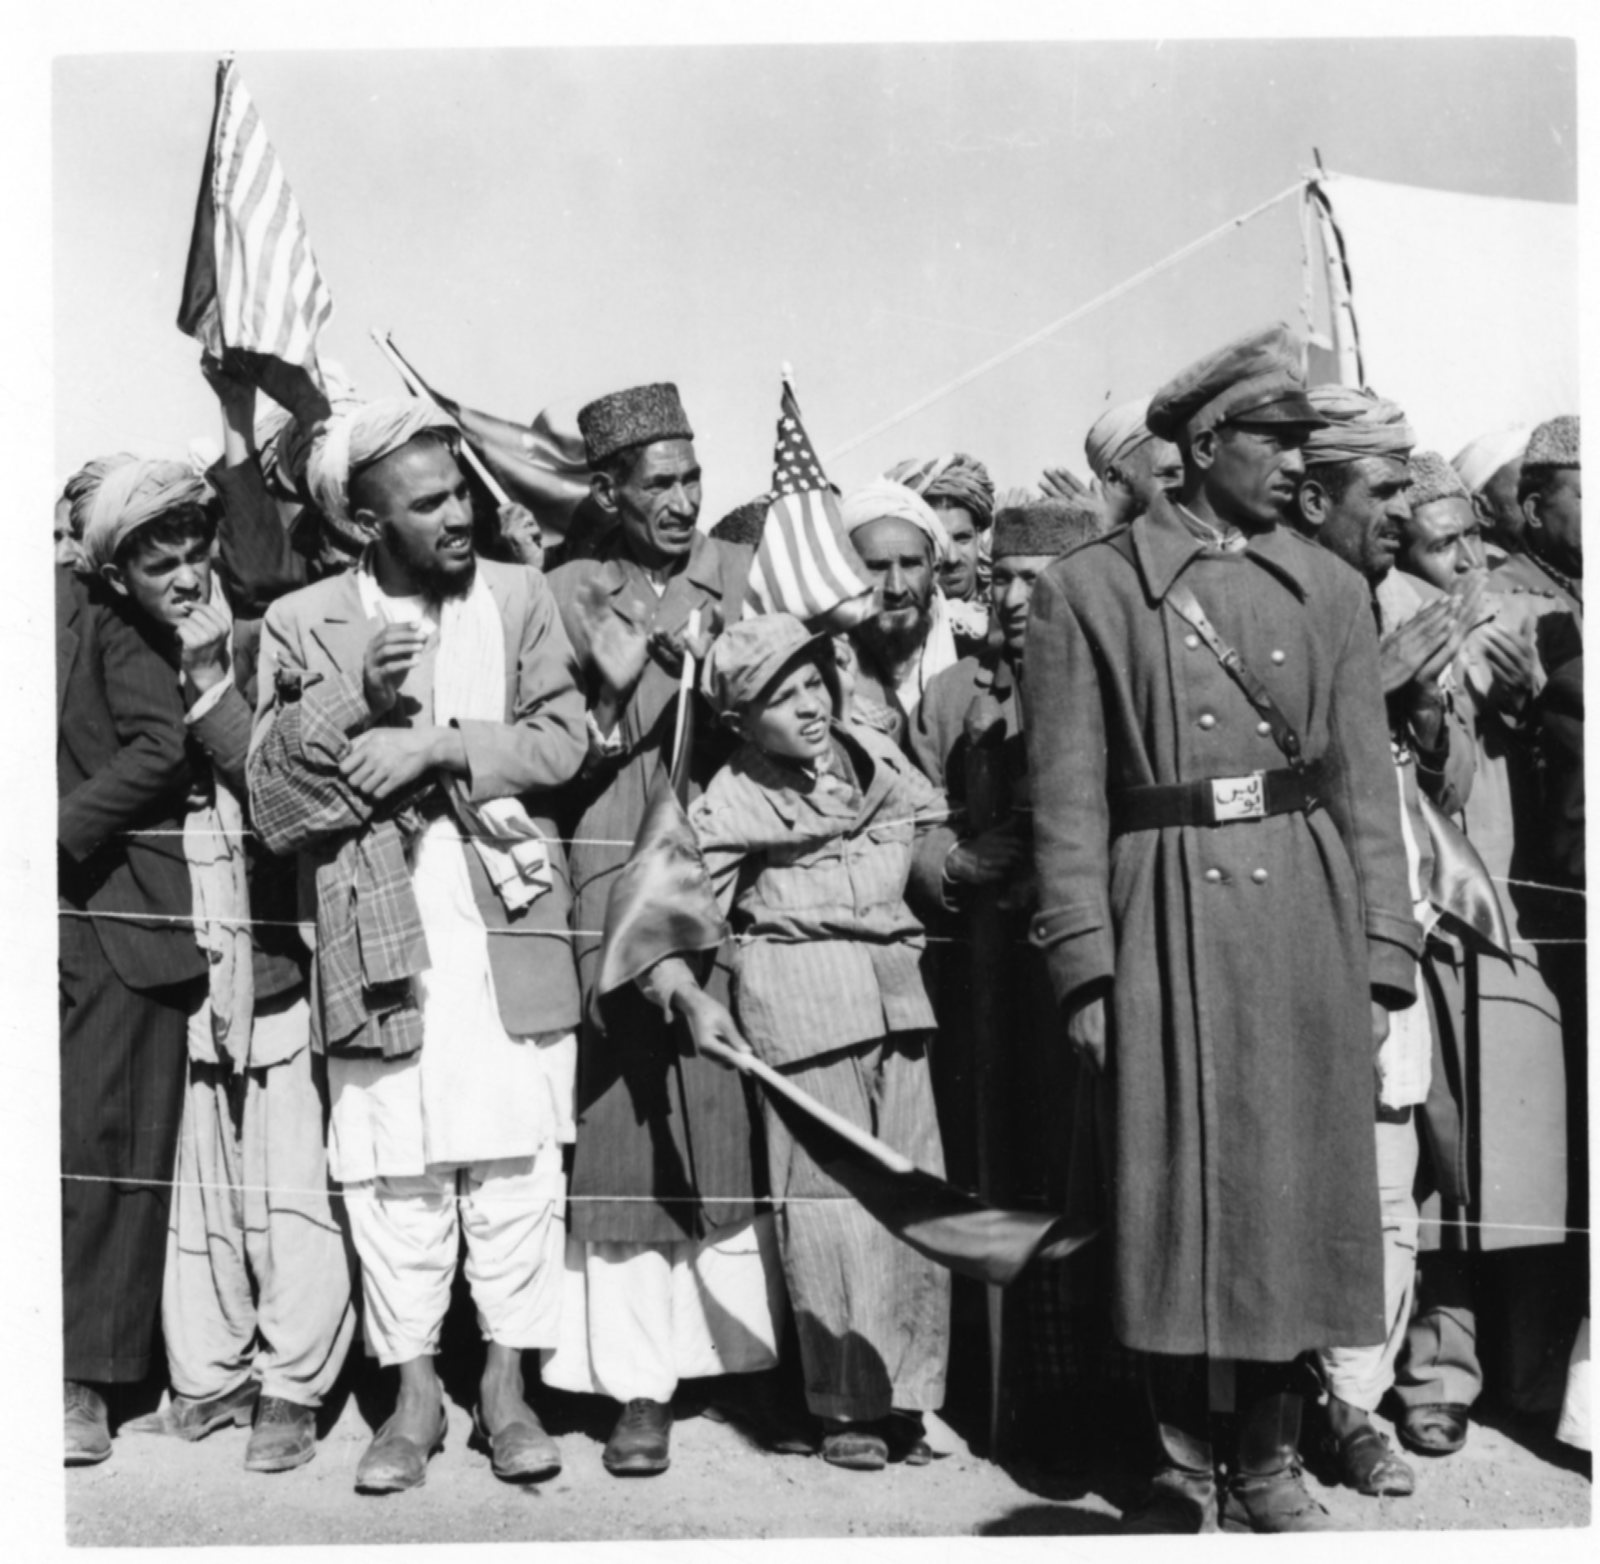 Spectators holding flags await the arrival of Vice President Richard Nixon in Afghanistan